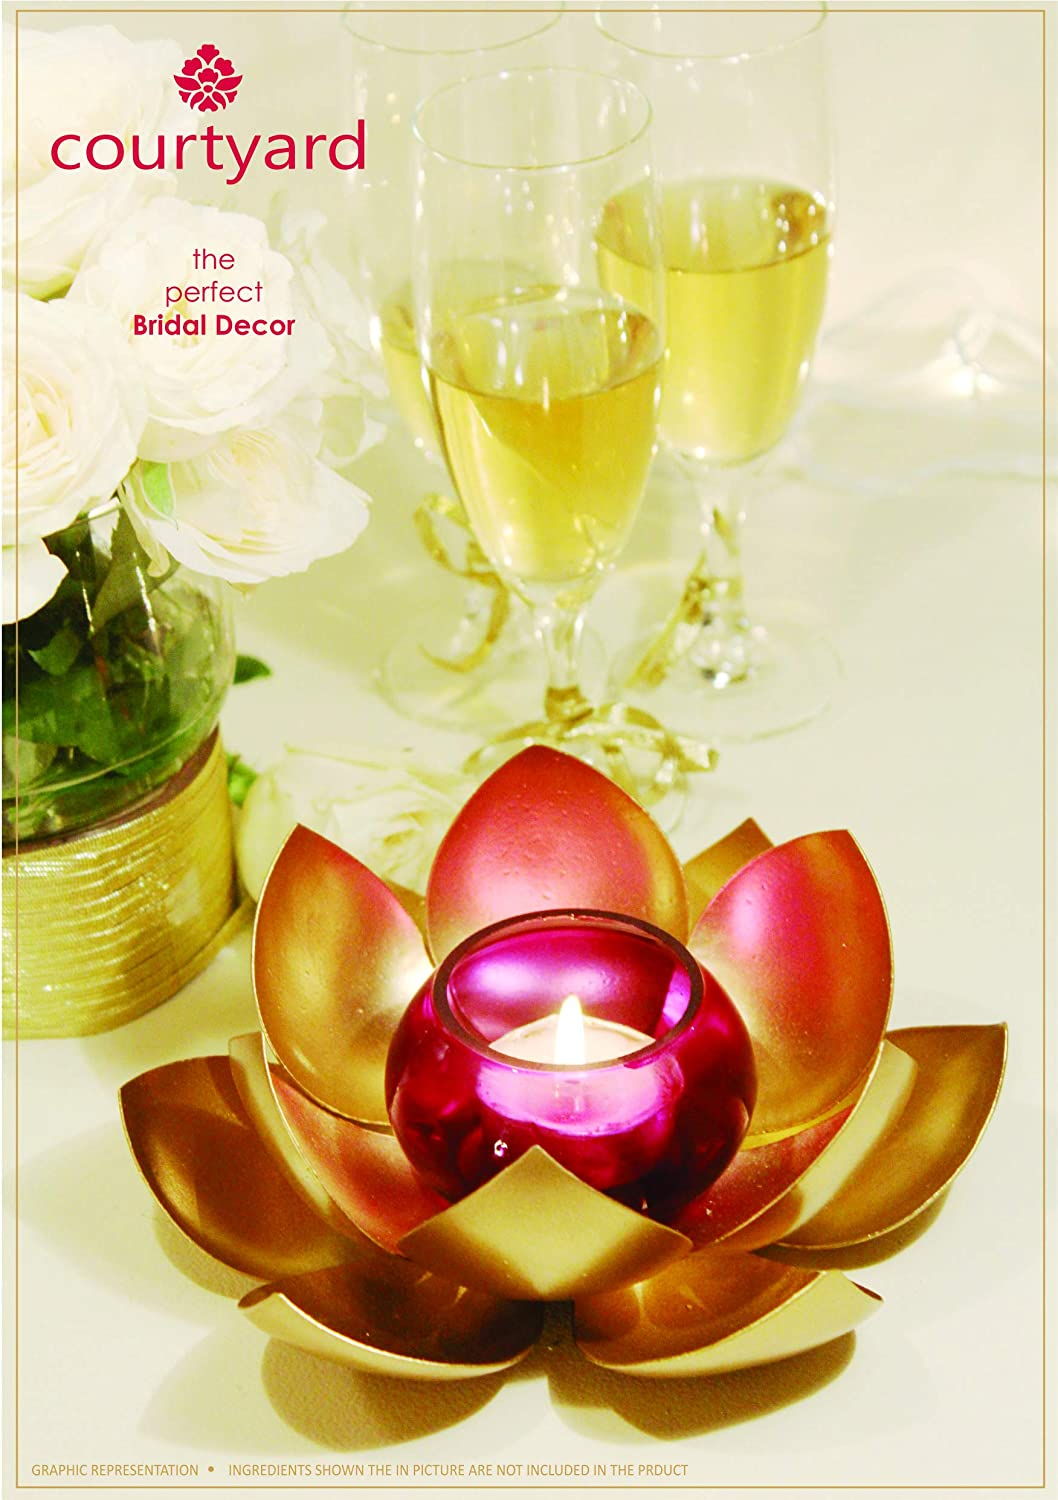 Excellent Indian Gift Item Aline Design Pvt Ltd ADLPFLGT001 Perfect Bridal or House Warming Gift or Business Gift Beautiful Home Decor  Pooja Accessory Brass and Glass Combination Lotus Candle Holder